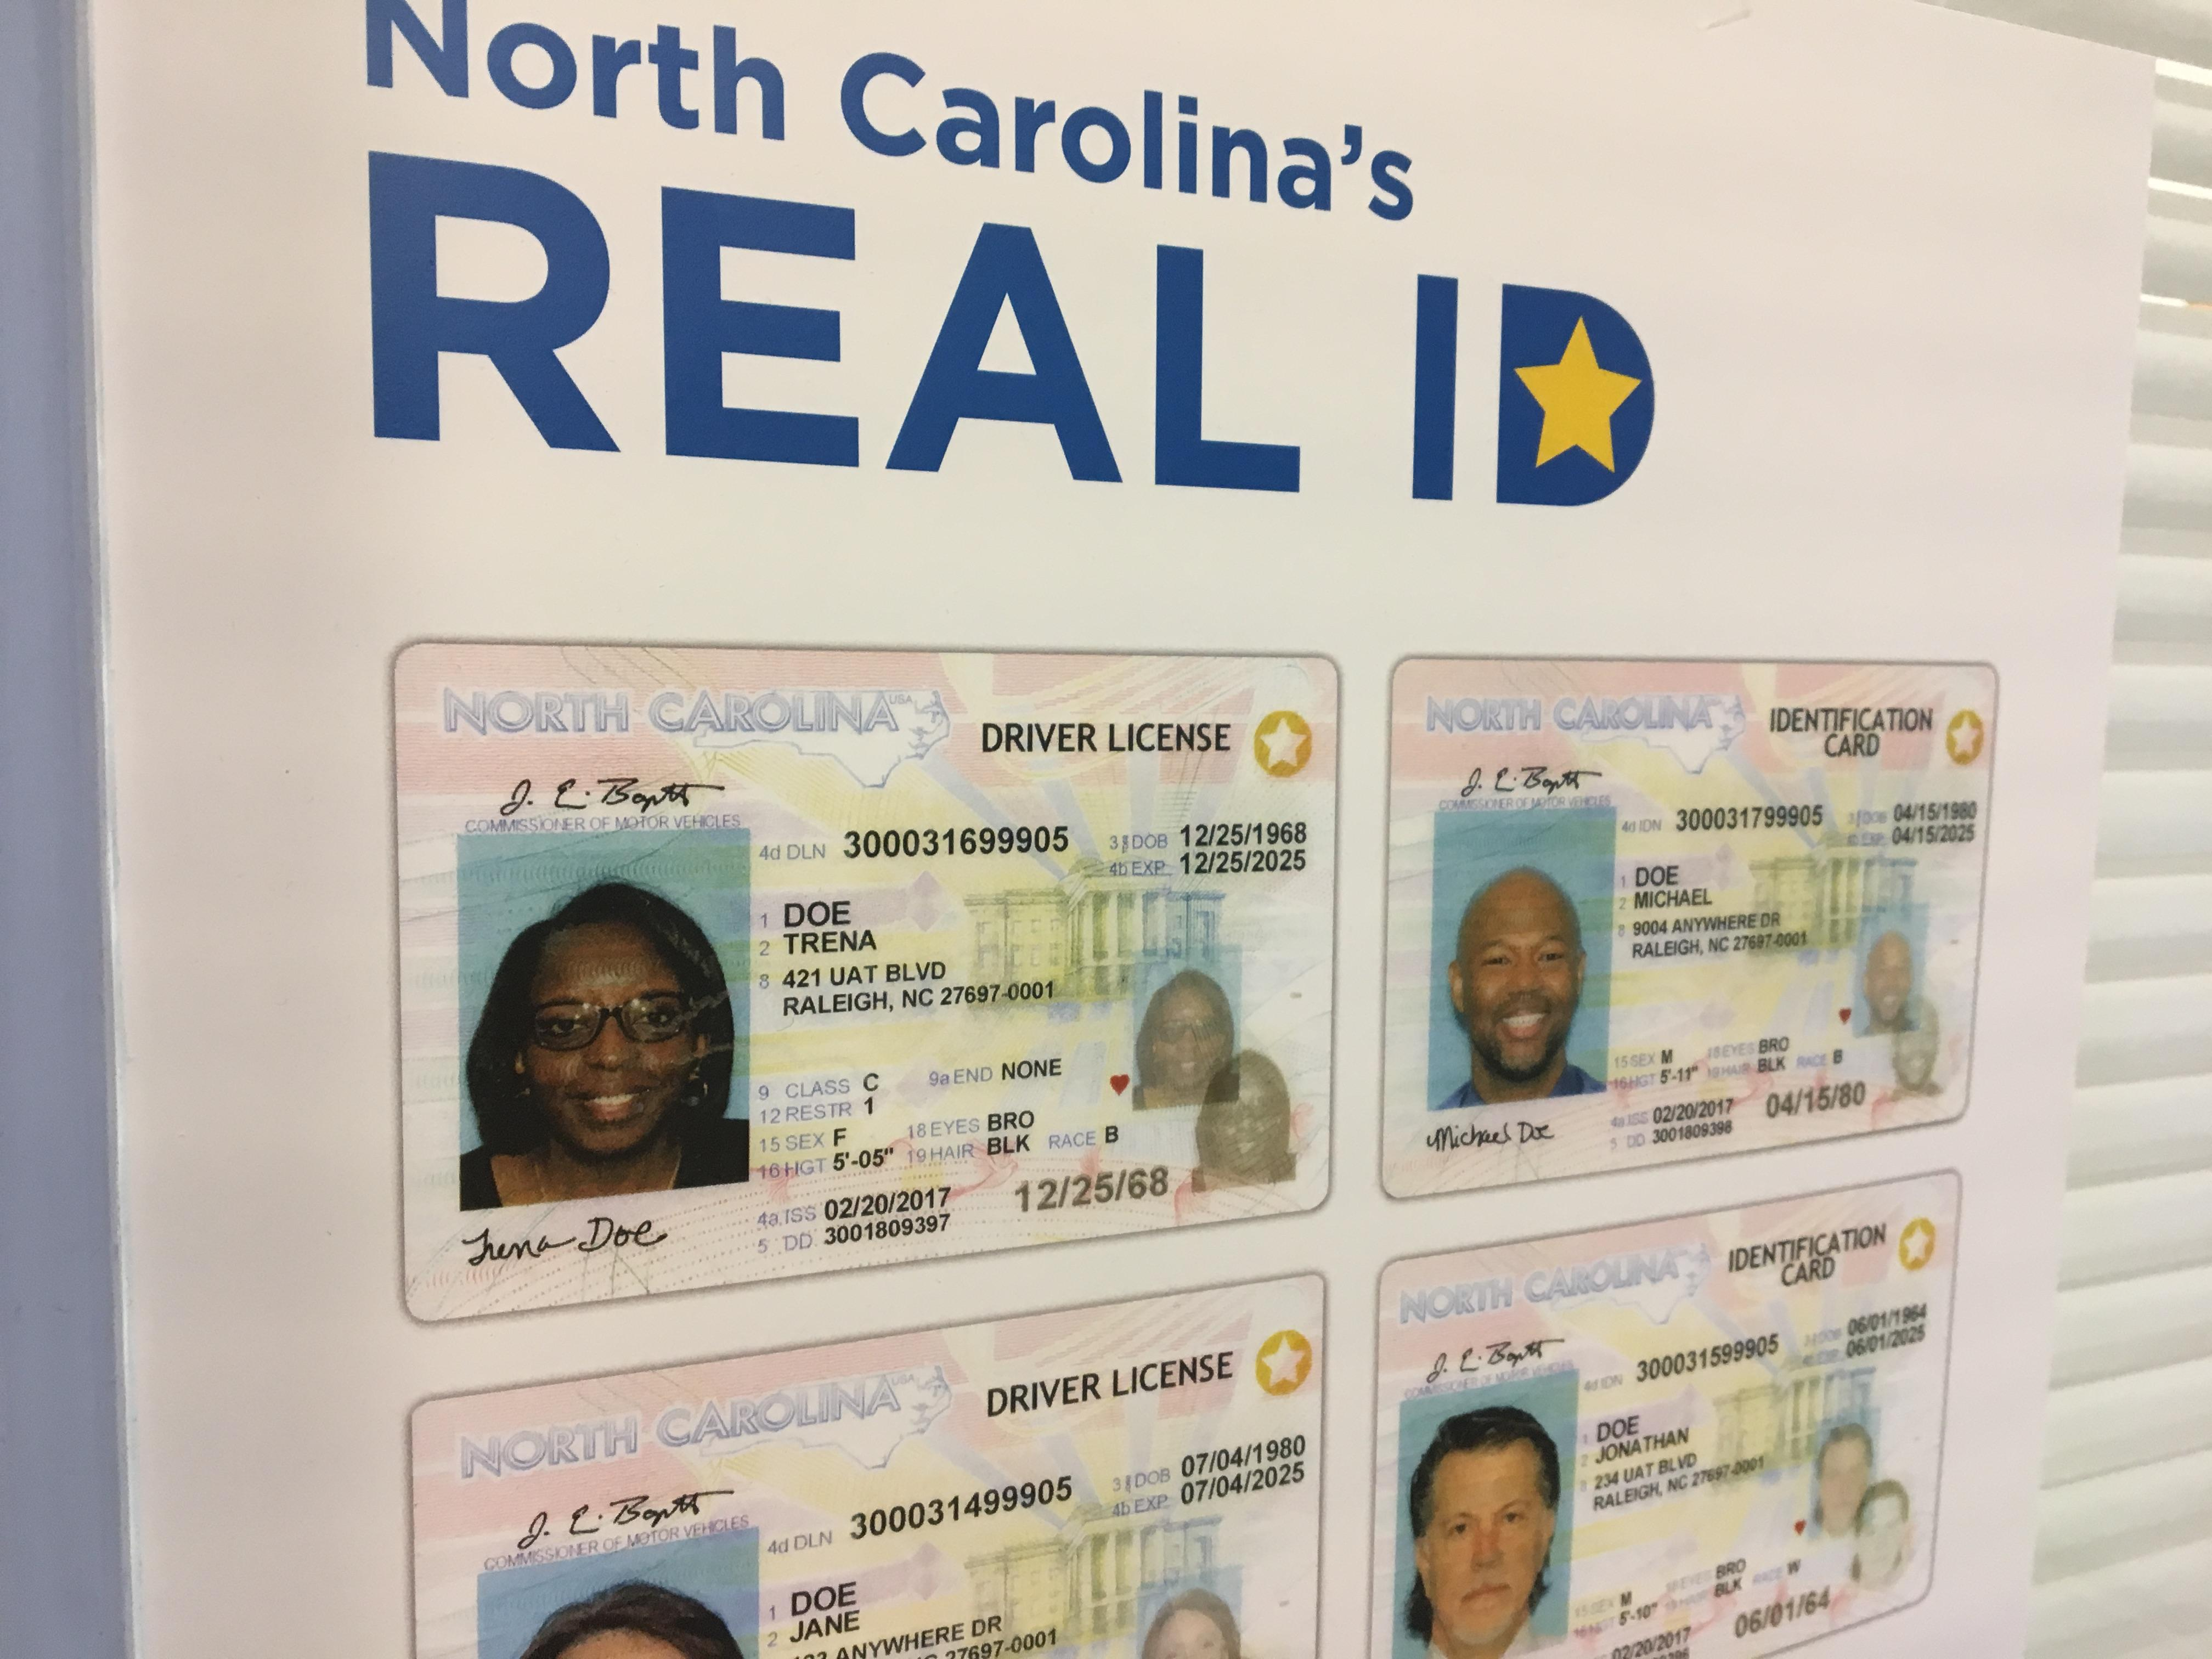 Changes are coming to airports across the U.S. and it involves your driver's license. (Photo credit: WLOS staff)